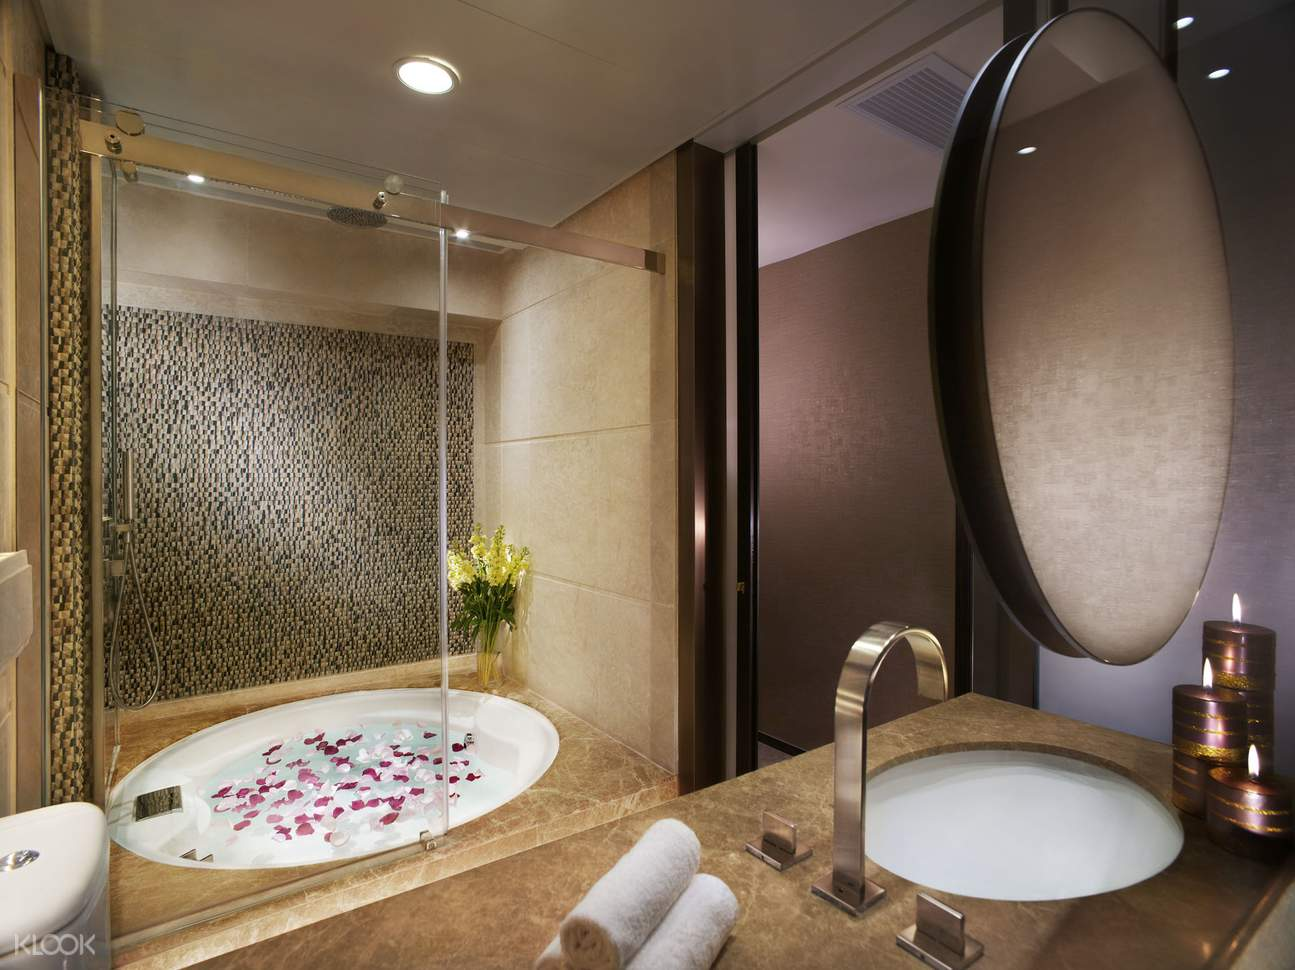 inside the Premier Harbour View Room Bathroom at Harbour Grand Hong Kong